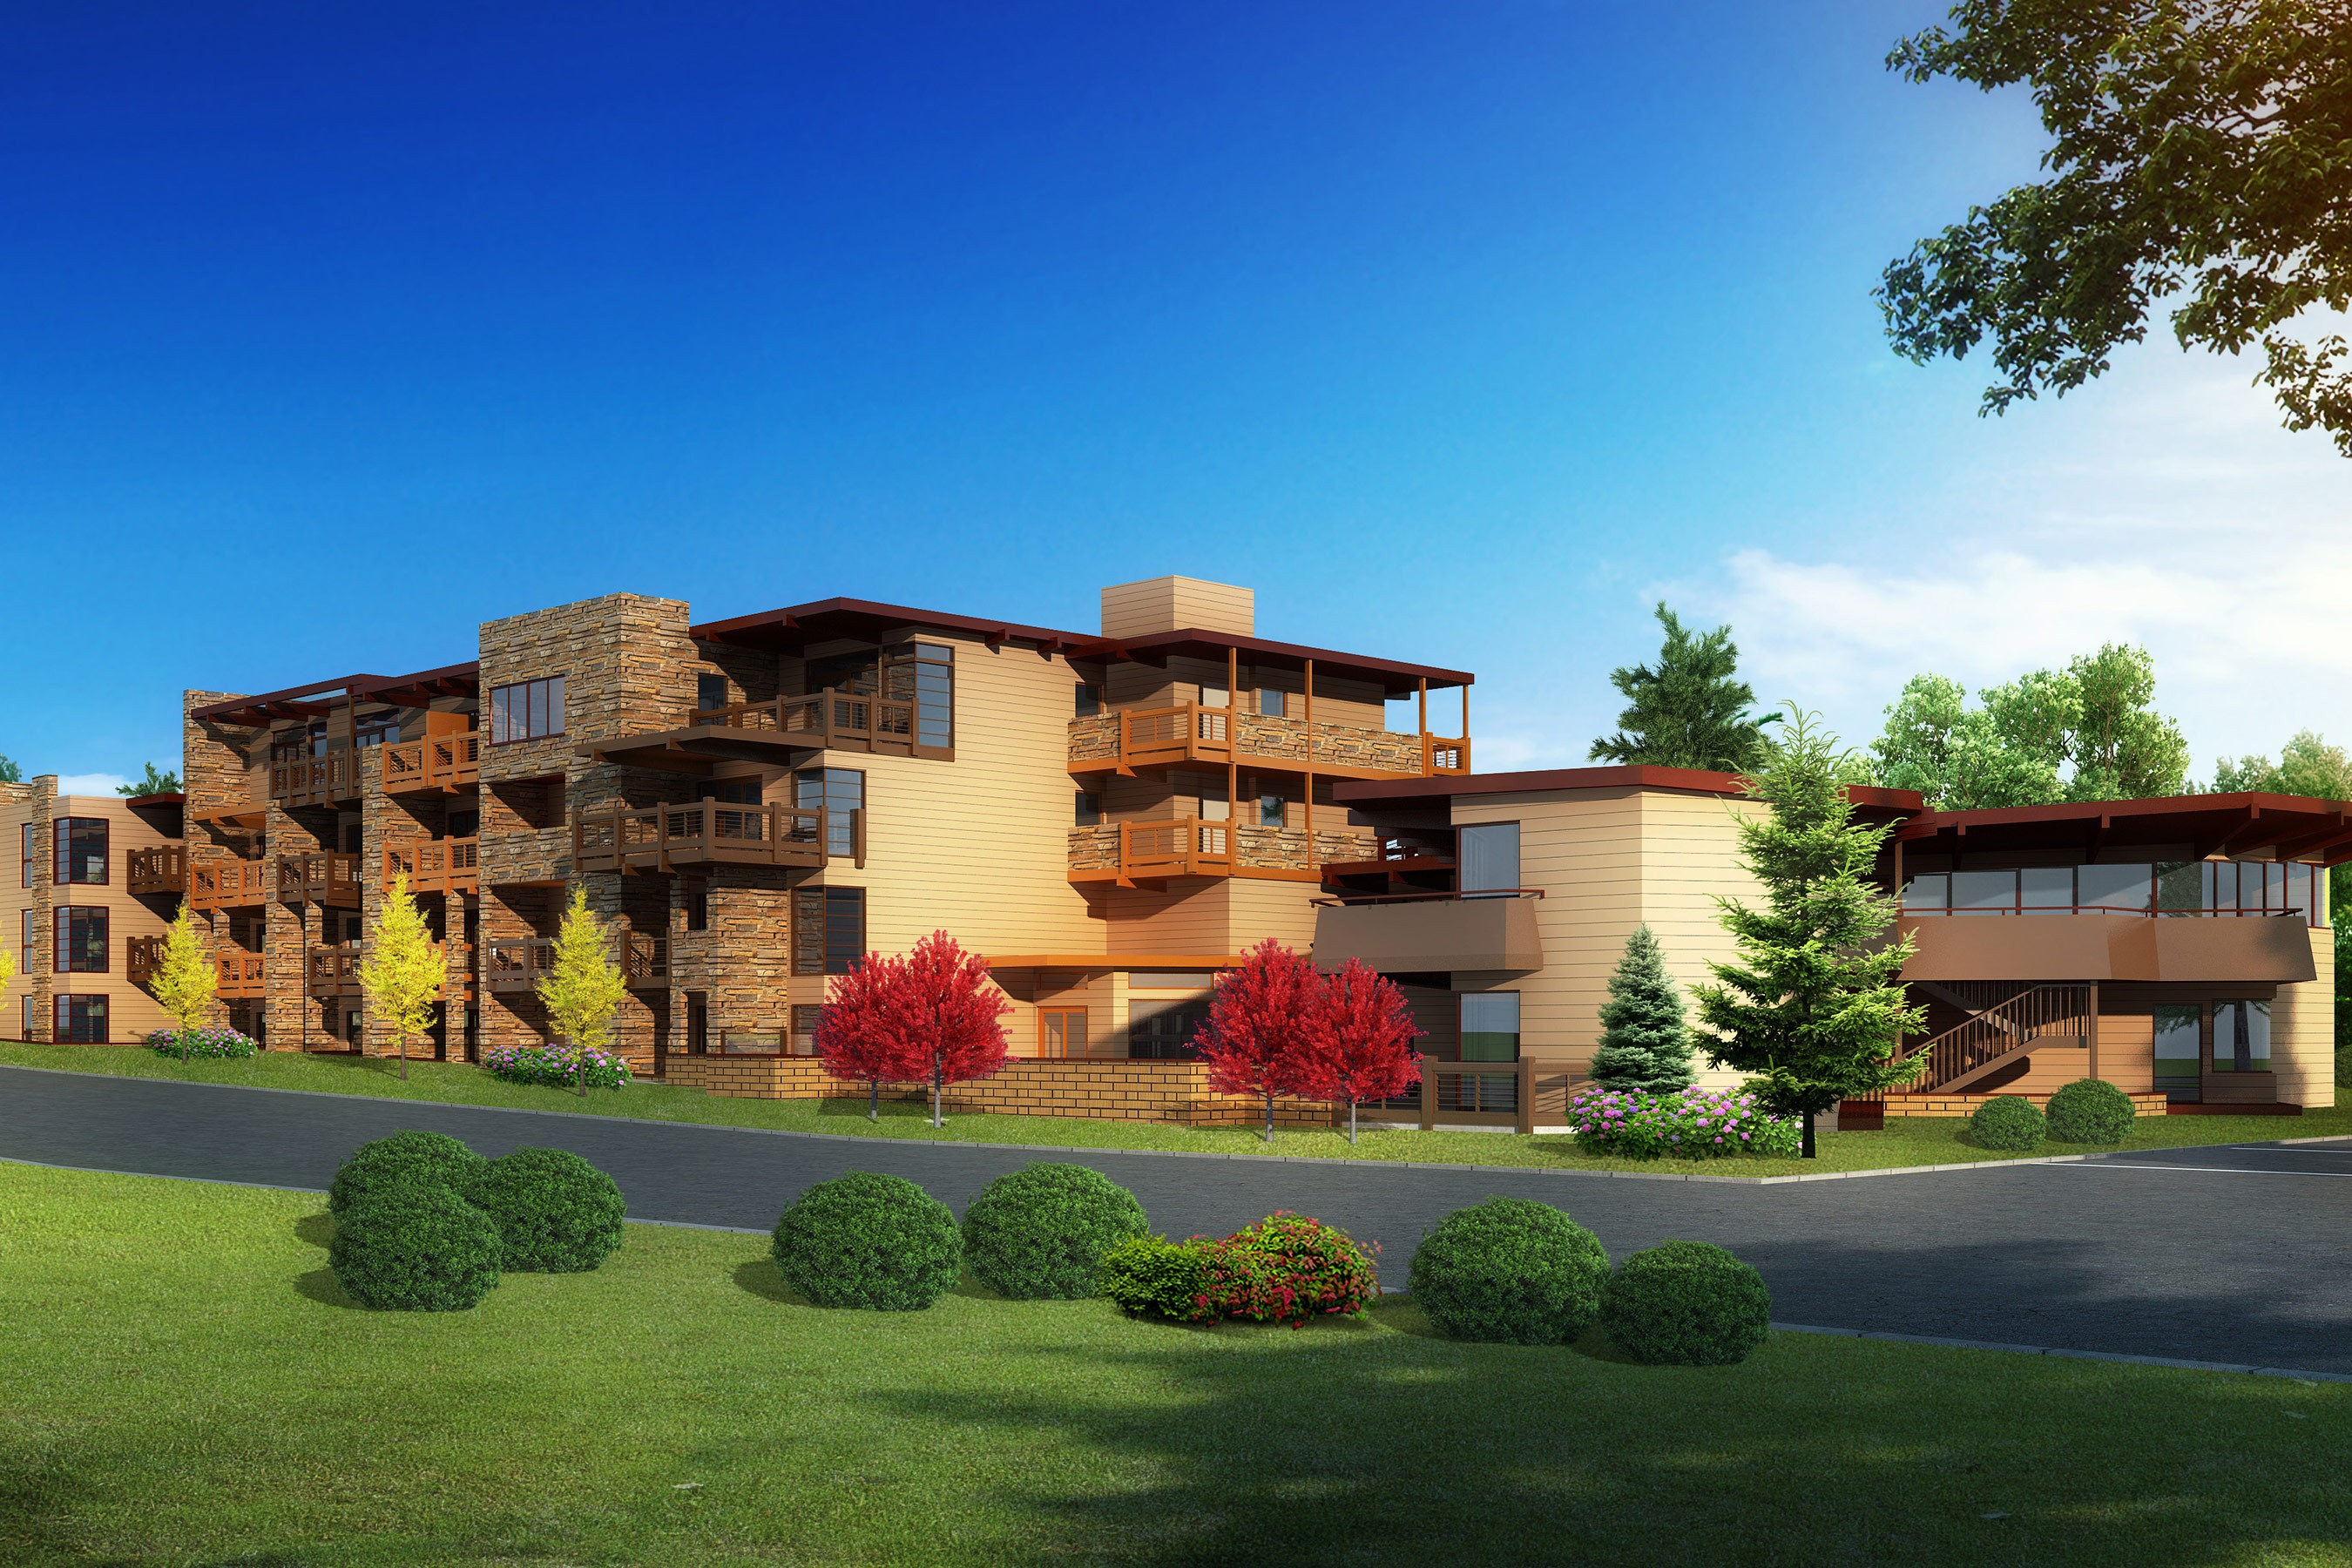 Condominium for Sale at Boomerang Lodge 500 W. Hopkins Avenue Unit 101 Aspen, Colorado, 81611 United States